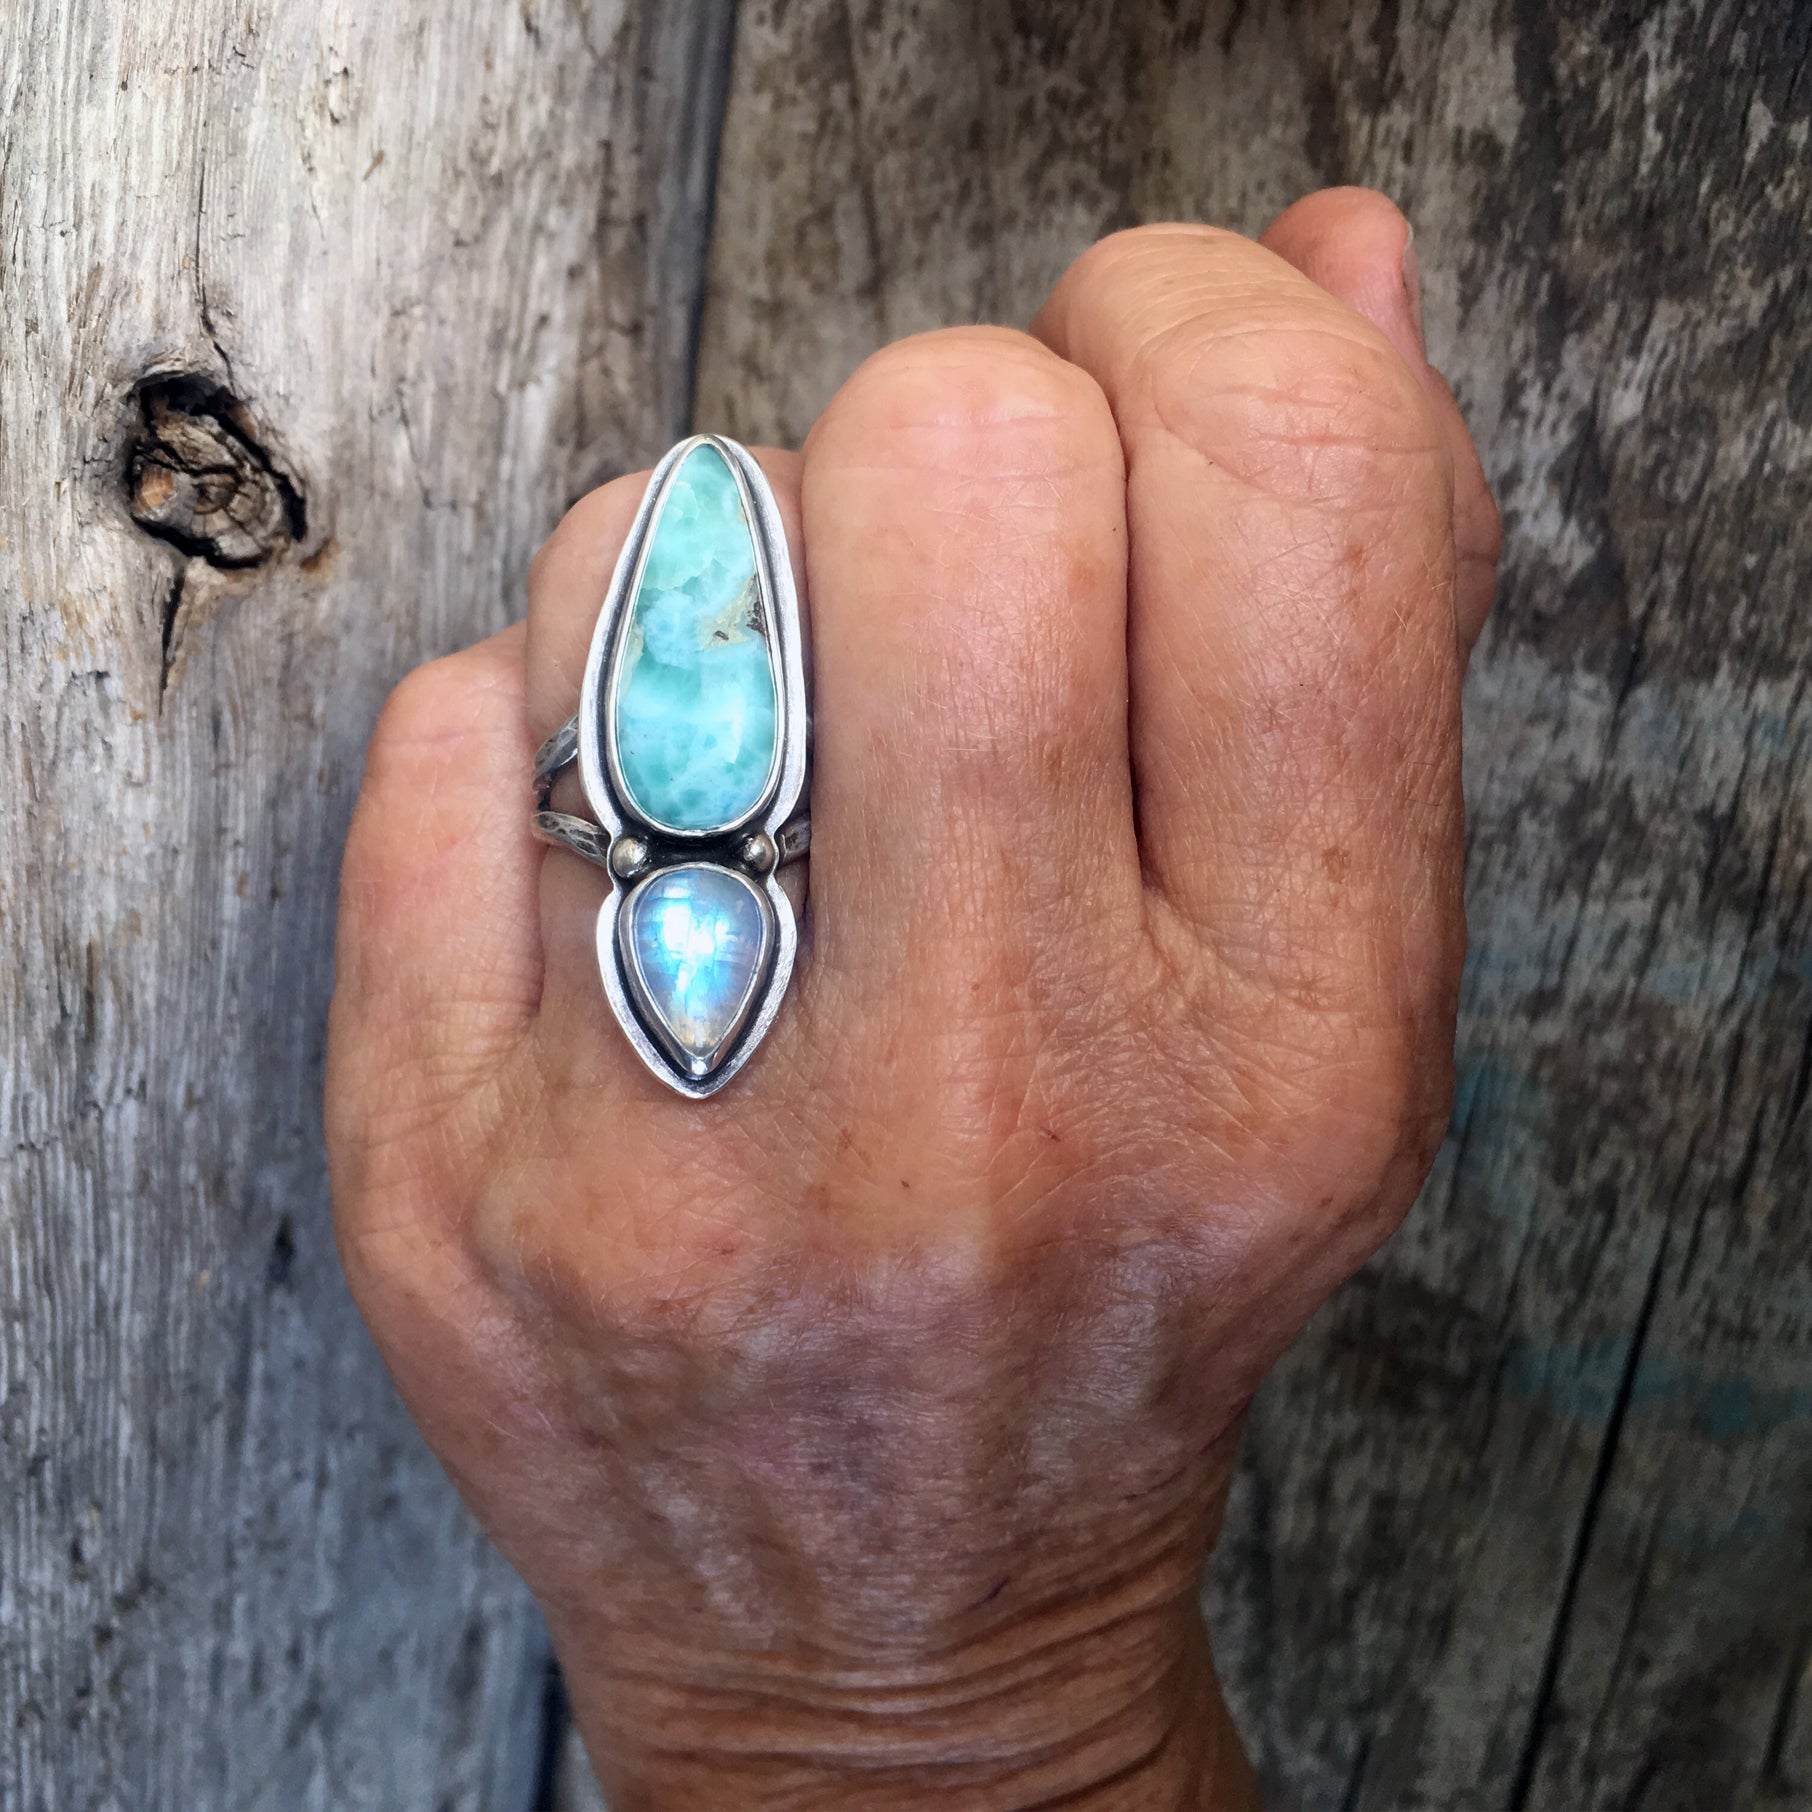 Double Amulet Ring with Larimar and Moonstone Shown on Hand